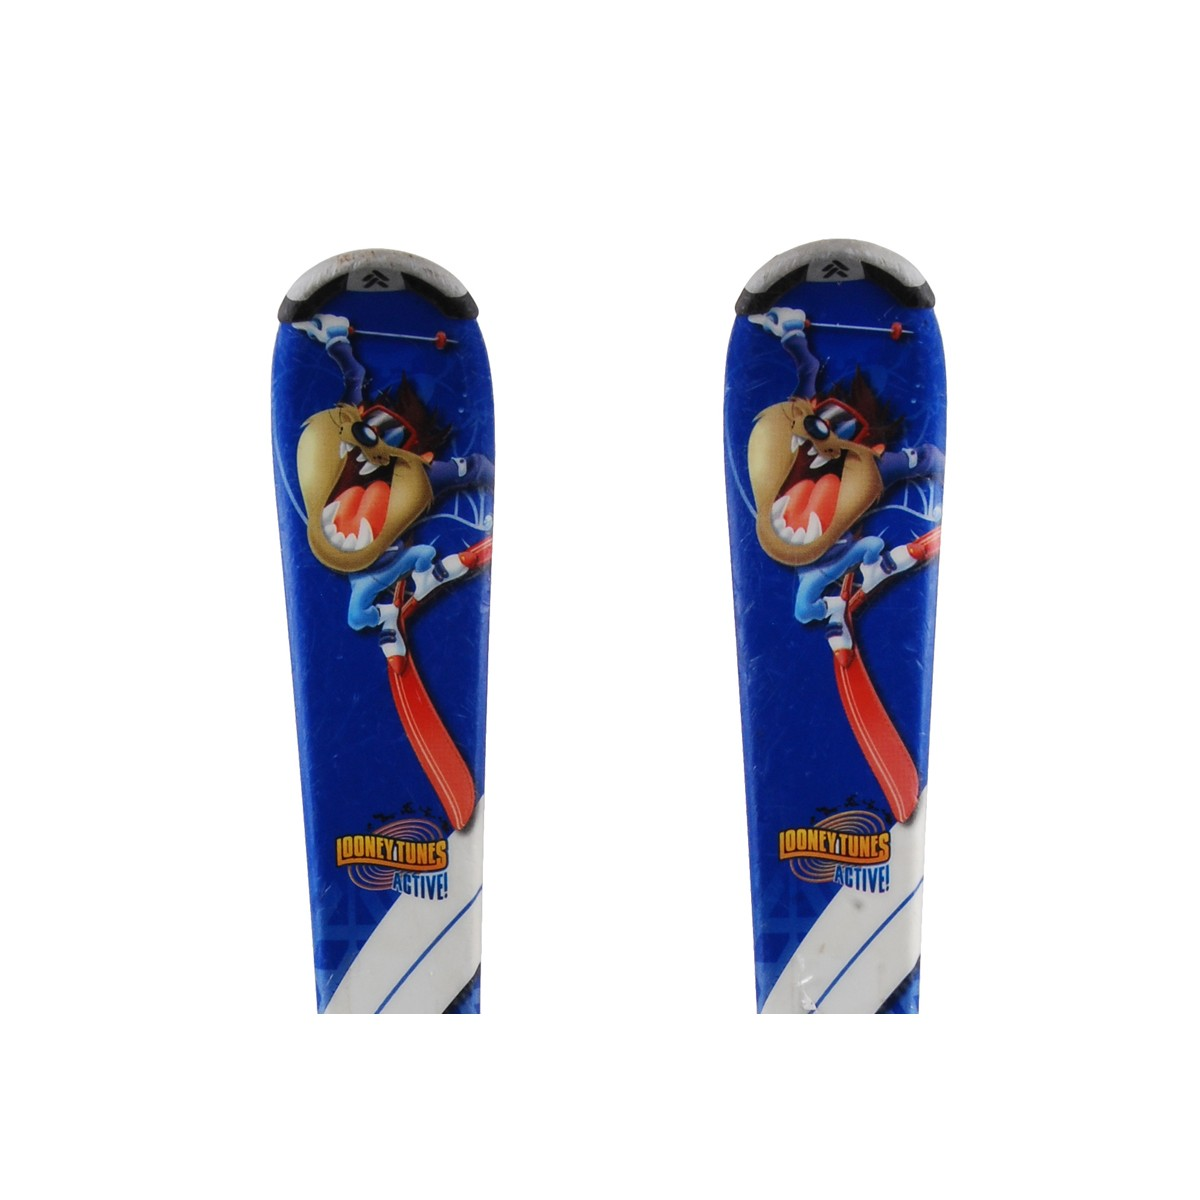 Ski-occasion-junior-Tecno-pro-Looney-Tunes-Active-fixations miniature 5